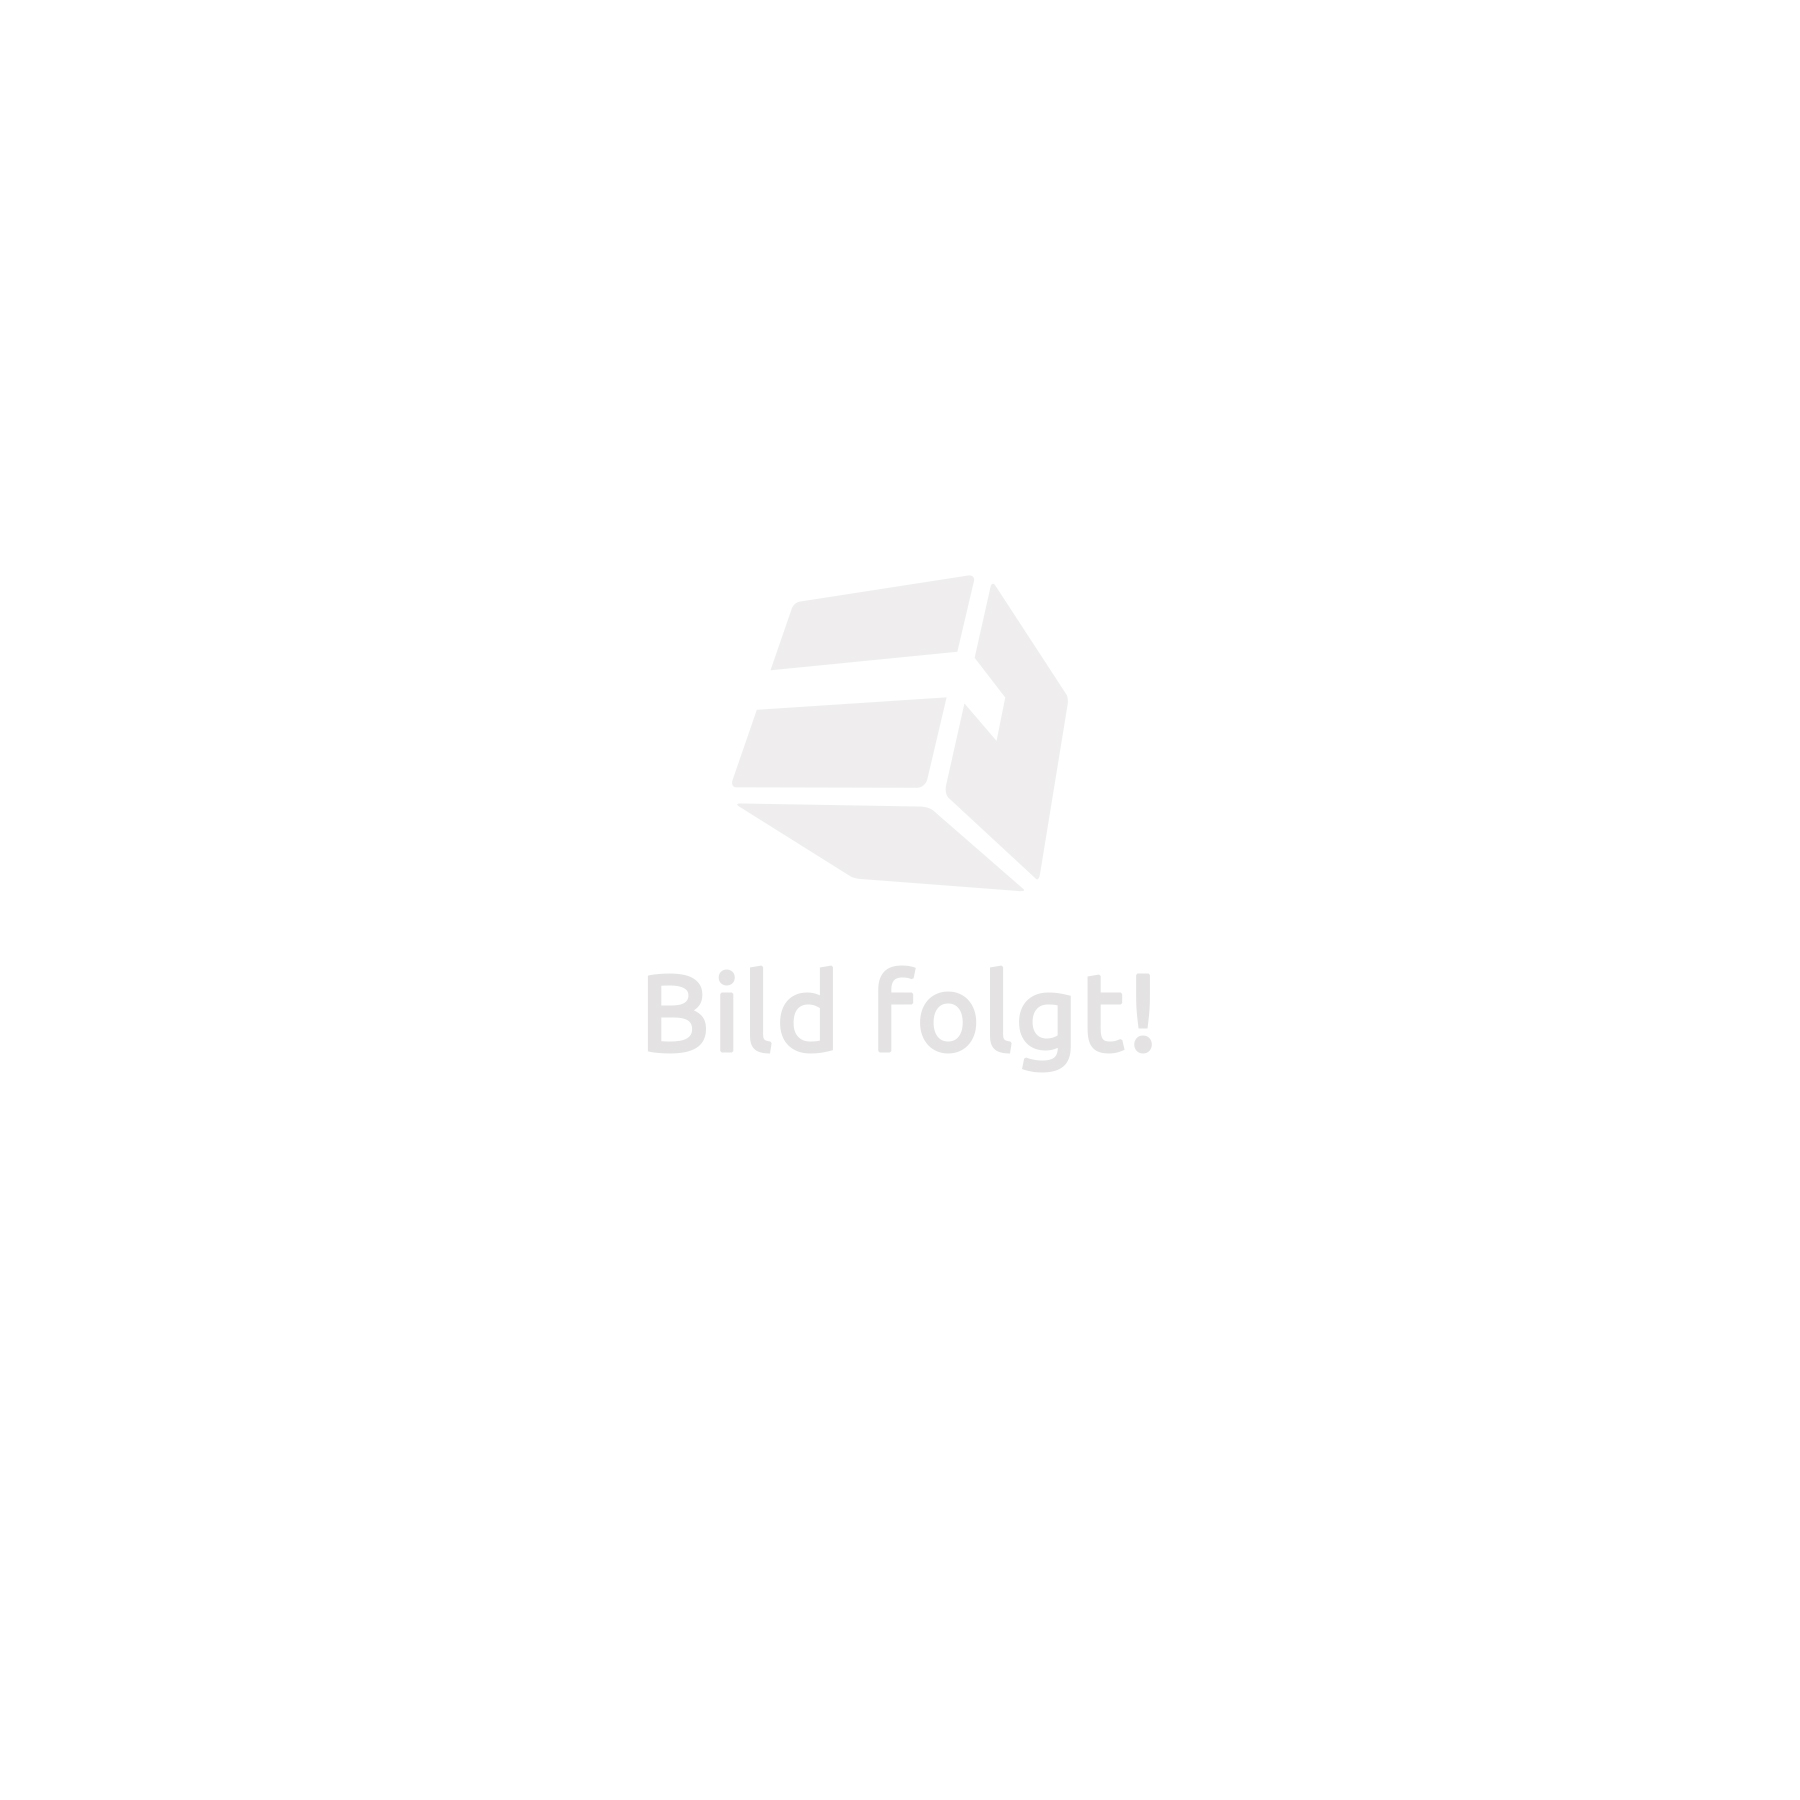 Porte accord on placard pliante extensible pvc salle de for Porte accordeon